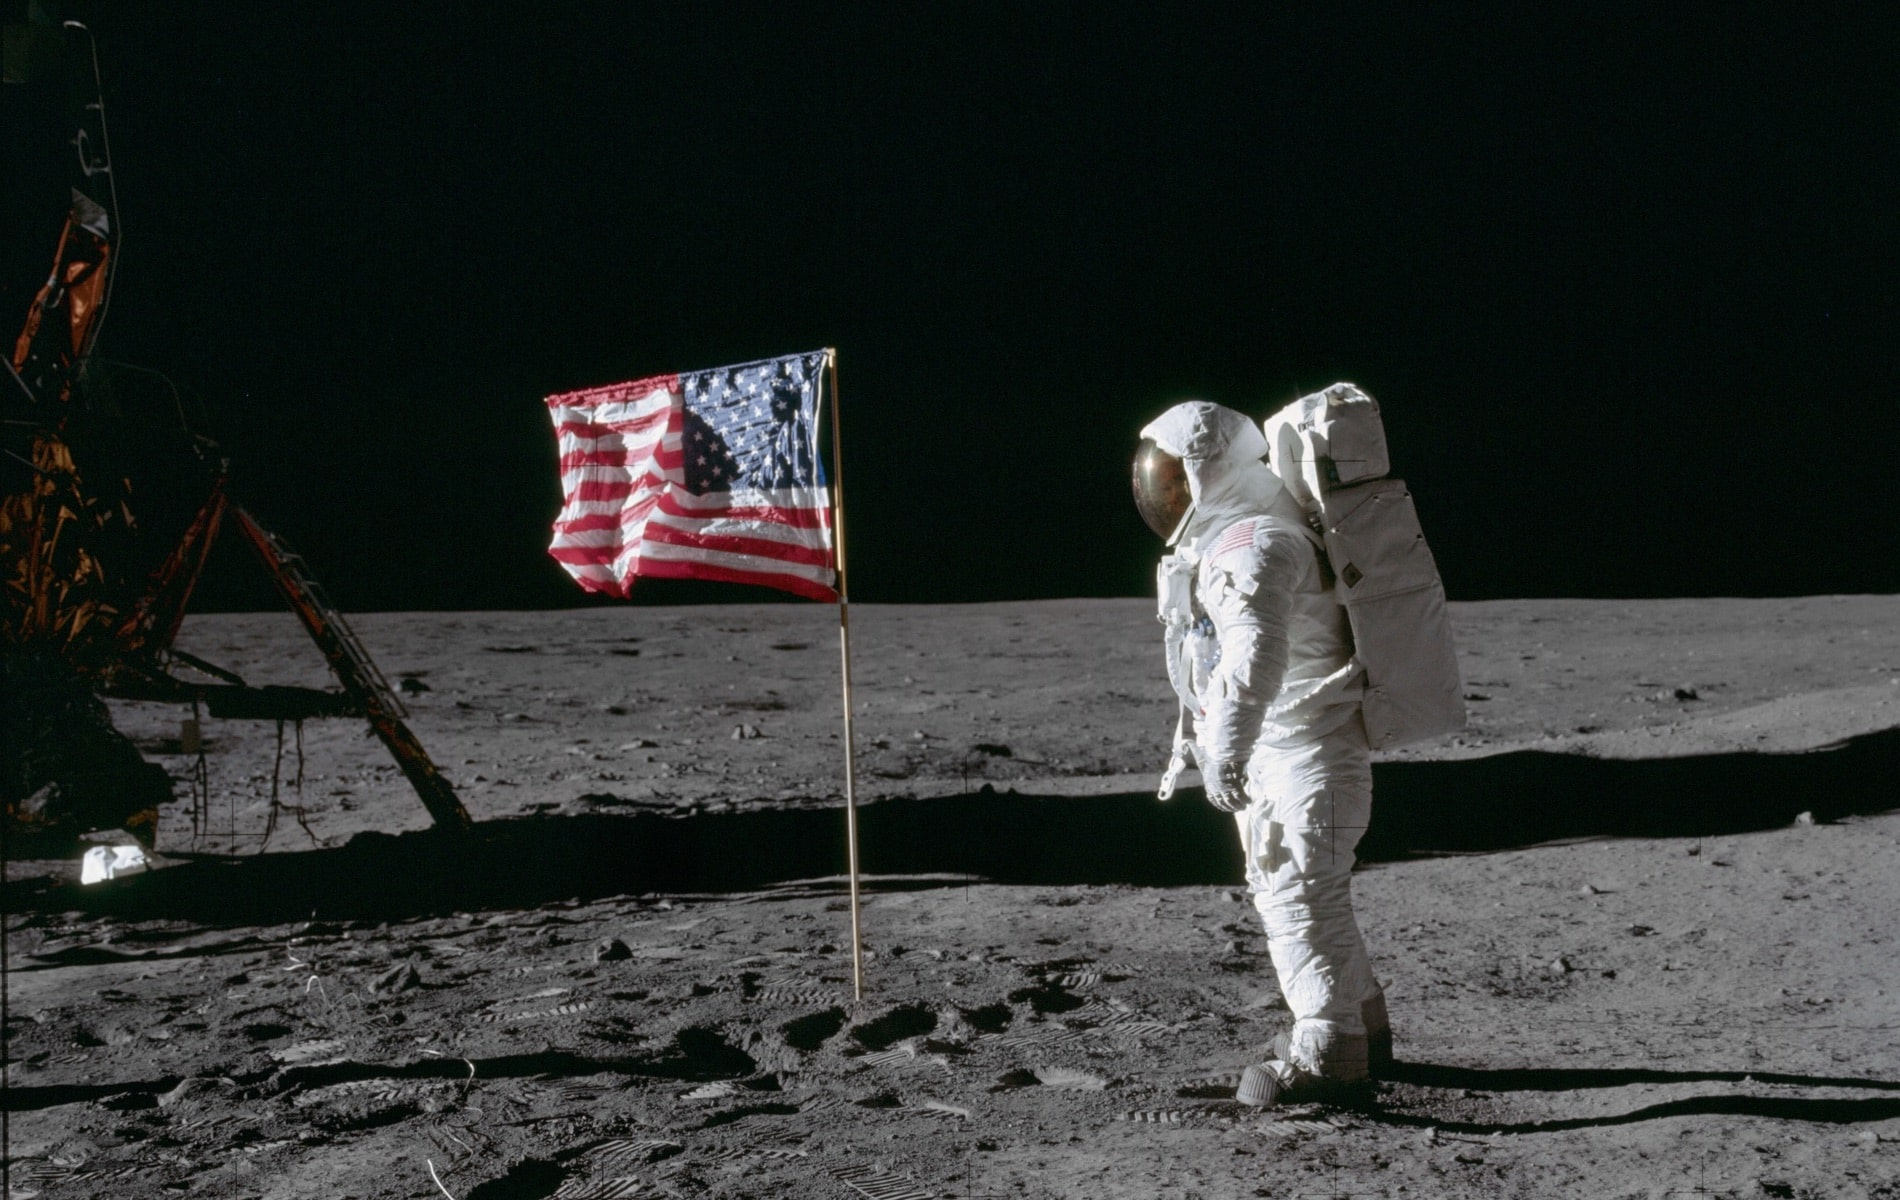 "Astronaut Edwin E. Aldrin Jr., lunar module pilot of the first lunar landing mission, poses for a photograph beside the deployed United States flag during Apollo 11 extravehicular activity (EVA) on the lunar surface. The Lunar Module (LM) is on the left, and the footprints of the astronauts are clearly visible in the soil of the moon. Astronaut Neil A. Armstrong, commander, took this picture with a 70mm Hasselblad lunar surface camera. While astronauts Armstrong and Aldrin descended in the LM the ""Eagle"" to explore the Sea of Tranquility region of the moon, astronaut Michael Collins, command module pilot, remained with the Command and Service Modules (CSM) ""Columbia"" in lunar orbit. nasa, apollo 11 50th anniversary"